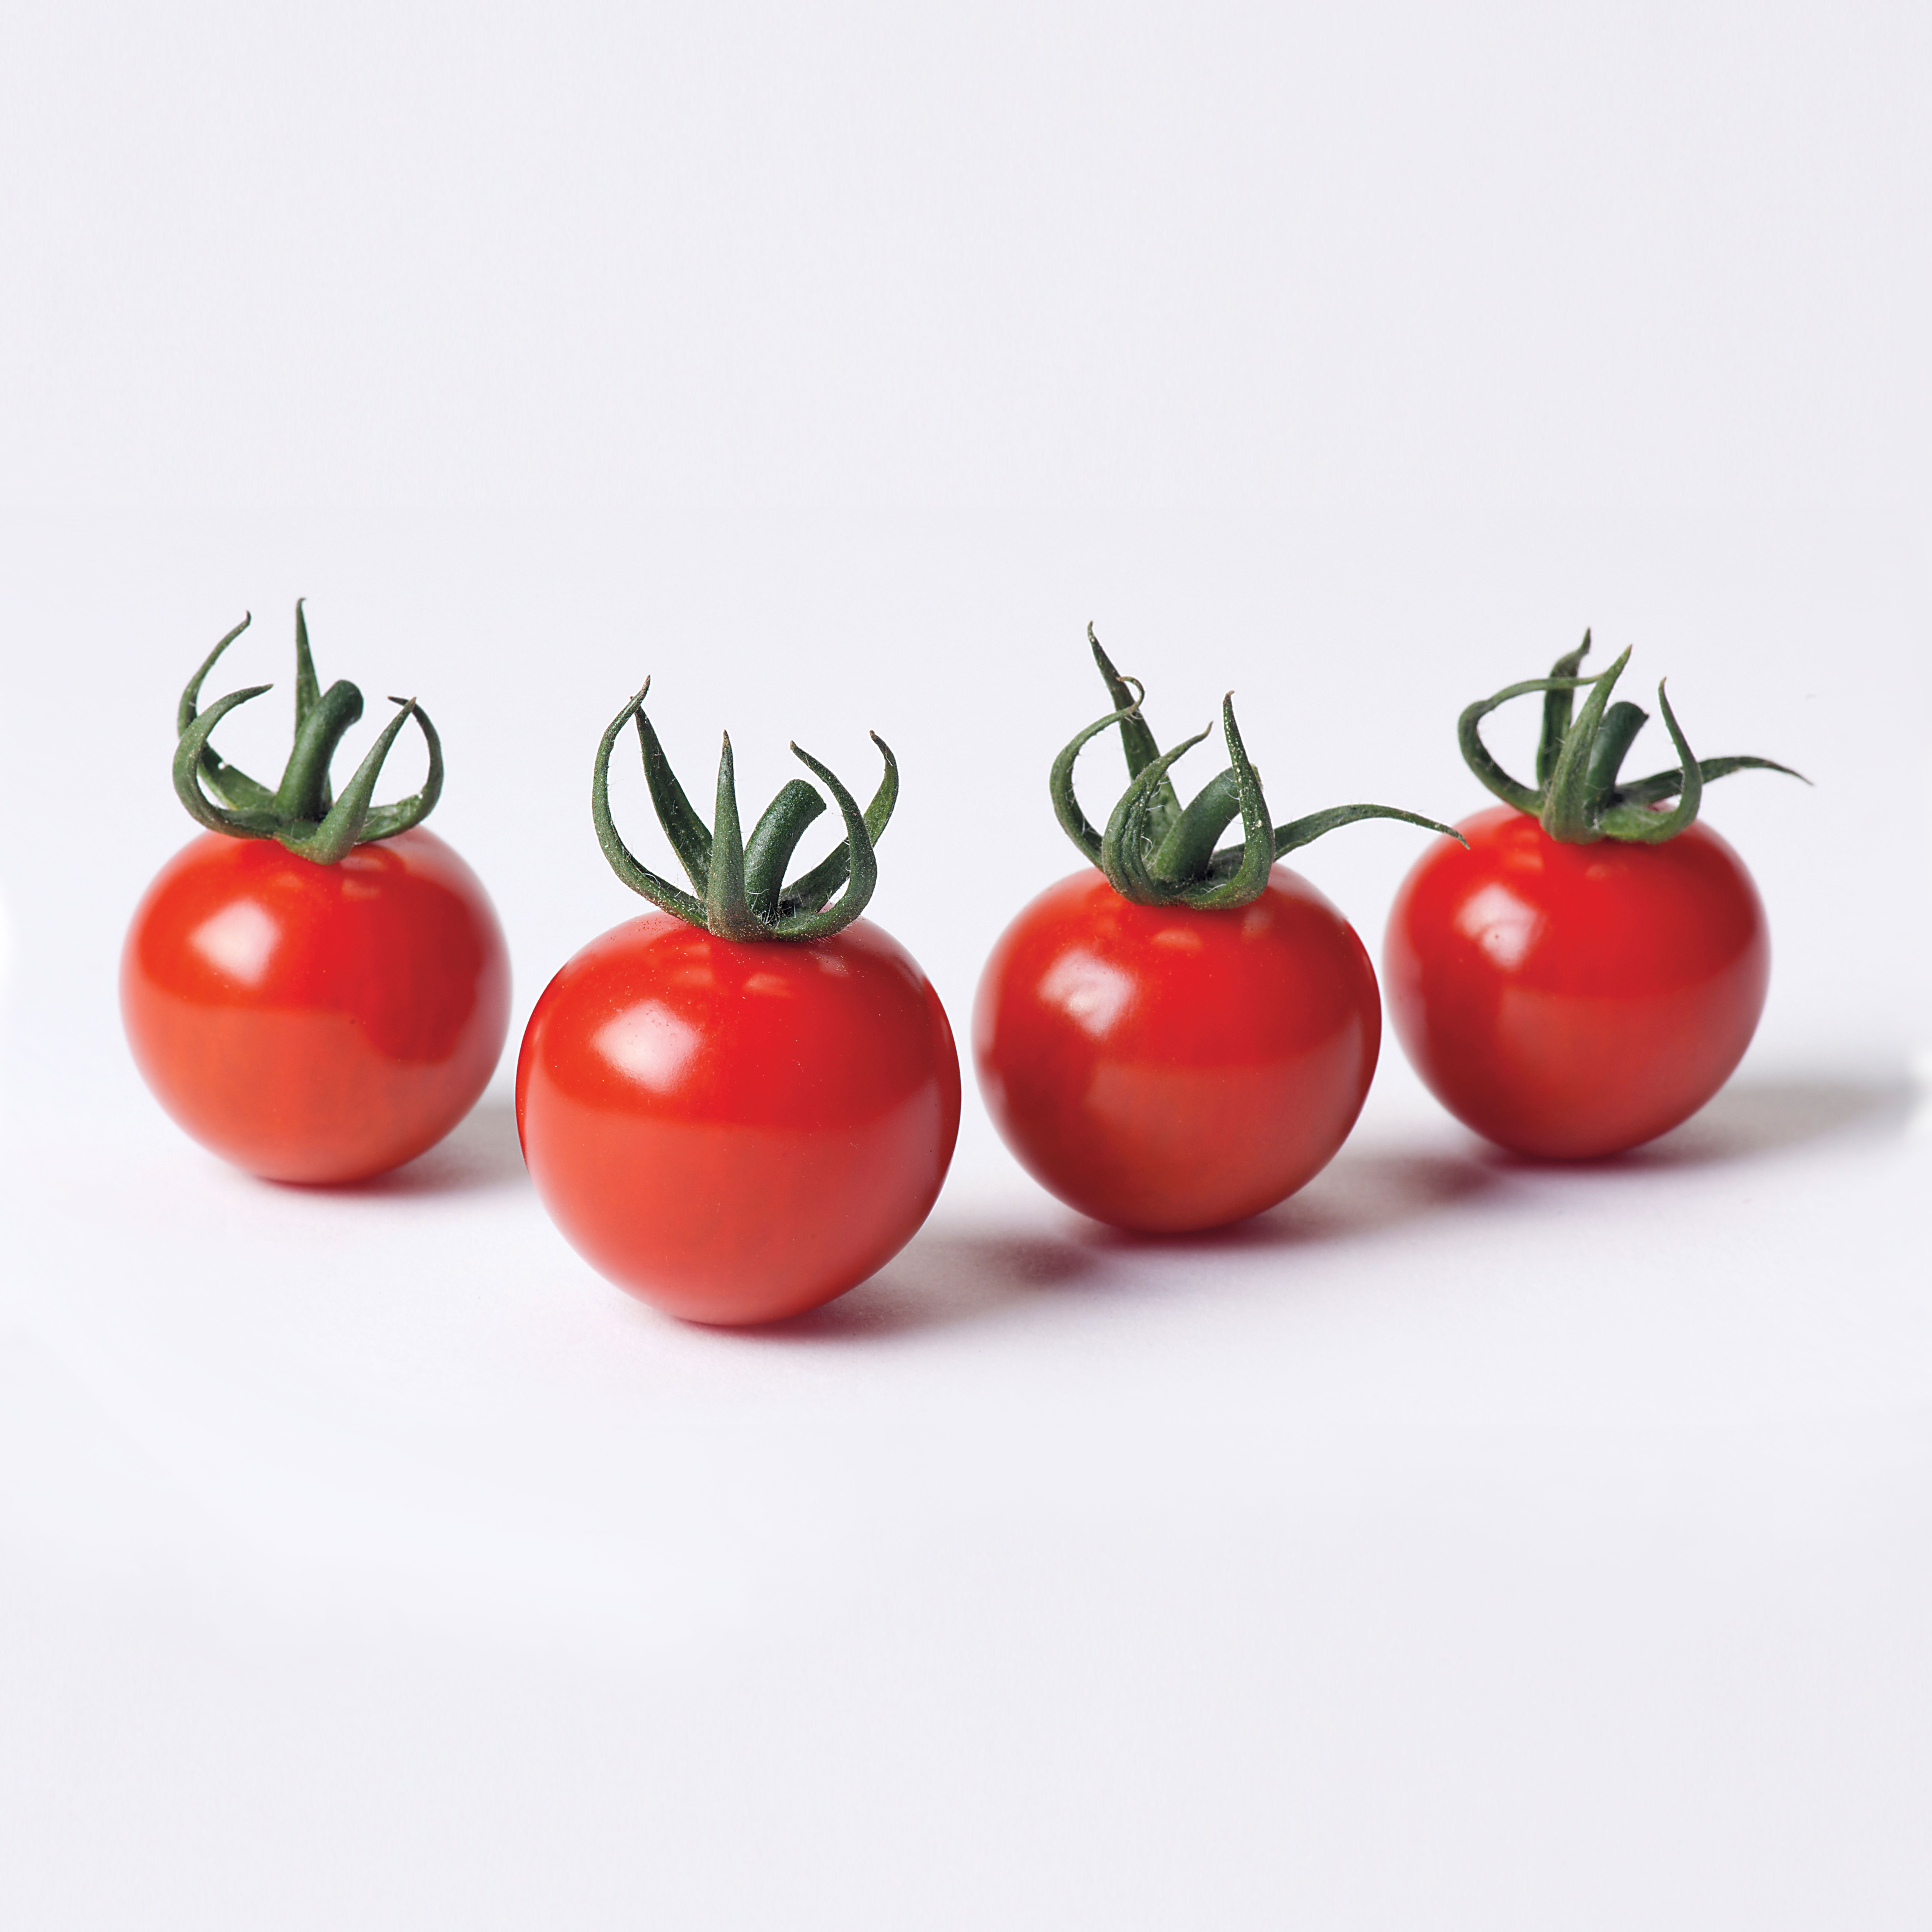 Braveheart Hybrid Cherry Tomato Seeds from Park Seed